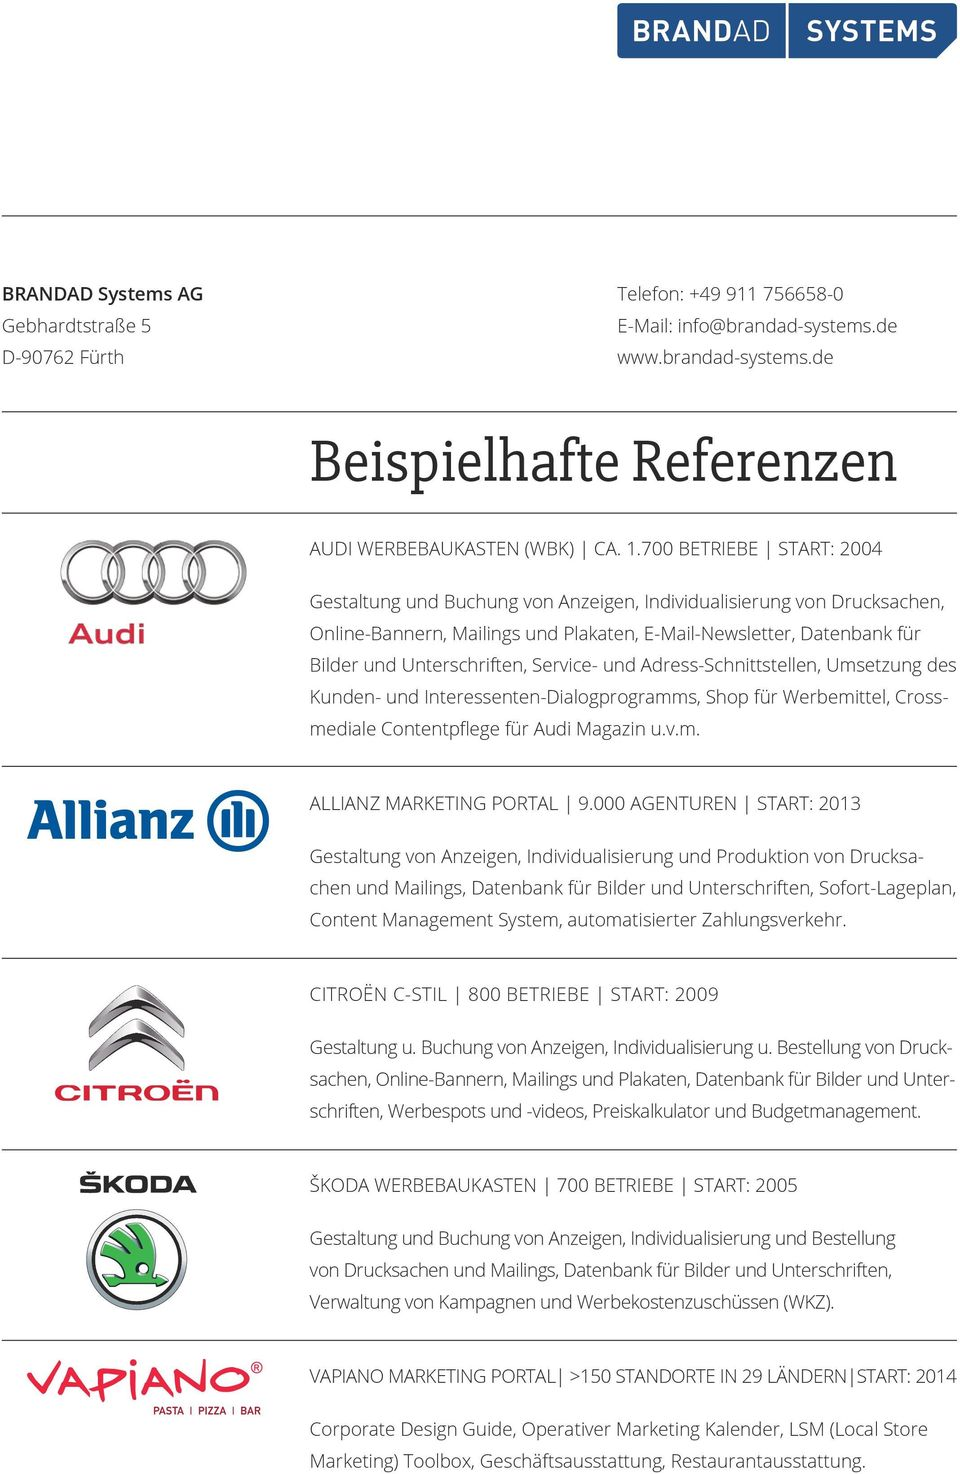 Service- und Adress-Schnittstellen, Umsetzung des Kunden- und Interessenten-Dialogprogramms, Shop für Werbemittel, Crossmediale Contentpflege für Audi Magazin u.v.m. ALLIANZ MARKETING PORTAL 9.